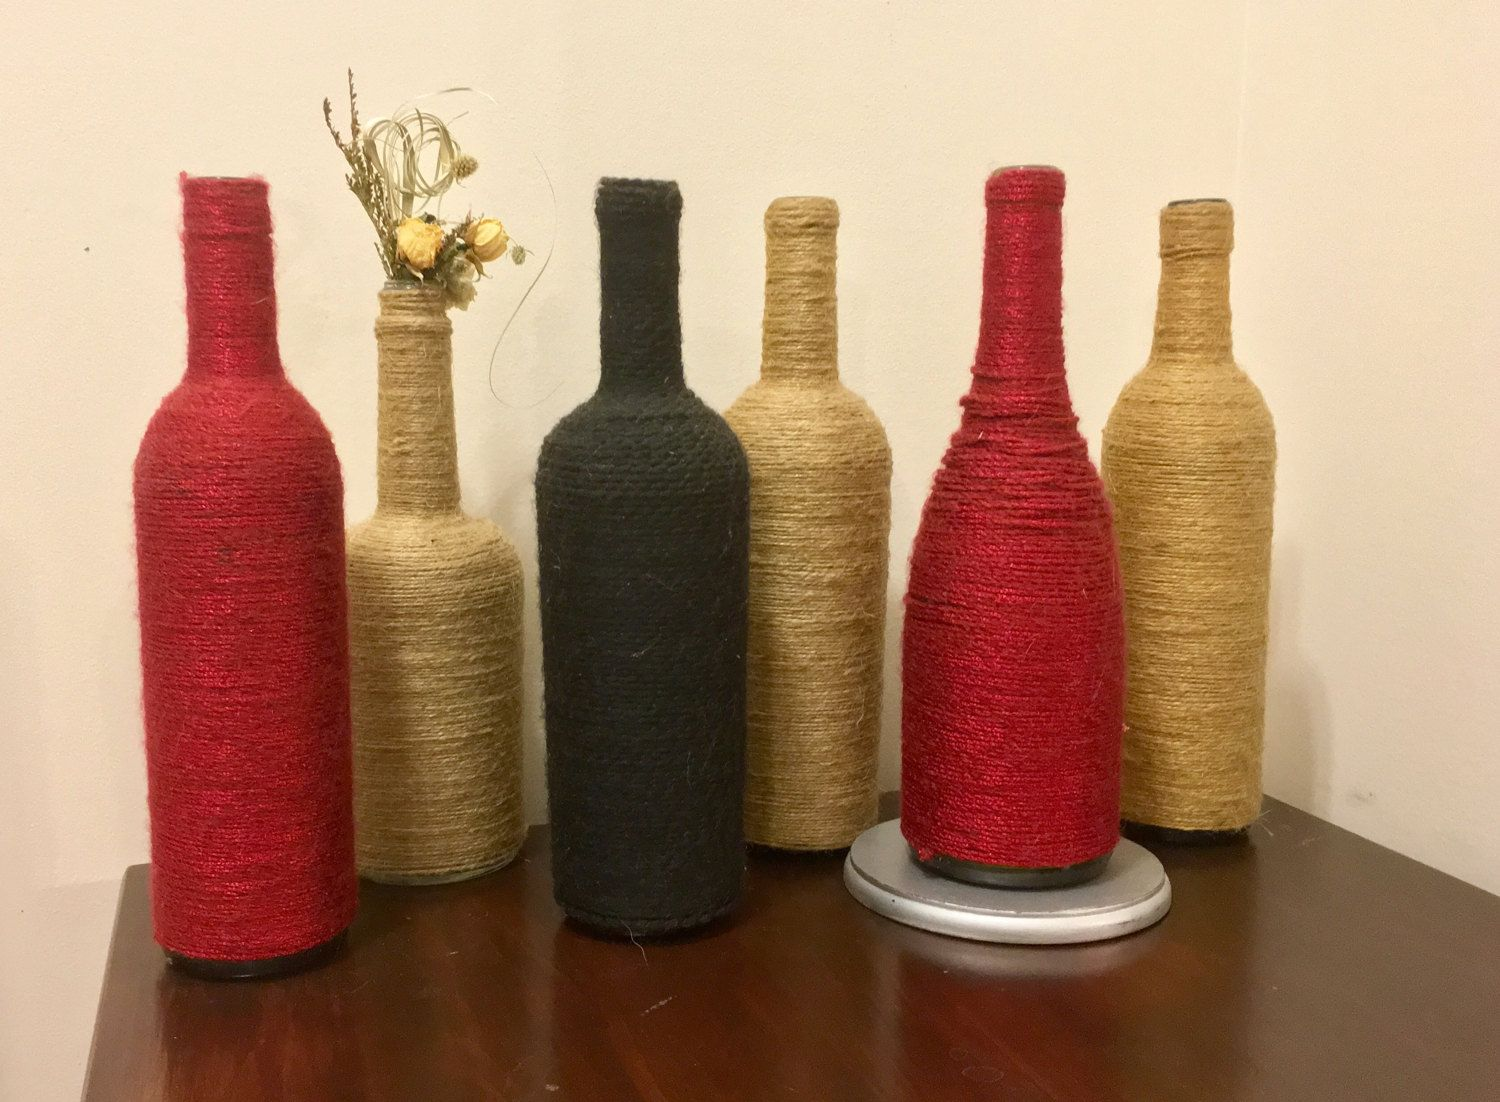 Twine Wrapped Wine Bottles Perfect For Misc Decorations Or Centerpieces 9 Each Or 3 For 24 12 Bottles Decoration Twine Wine Bottles Wine Bottle Decor